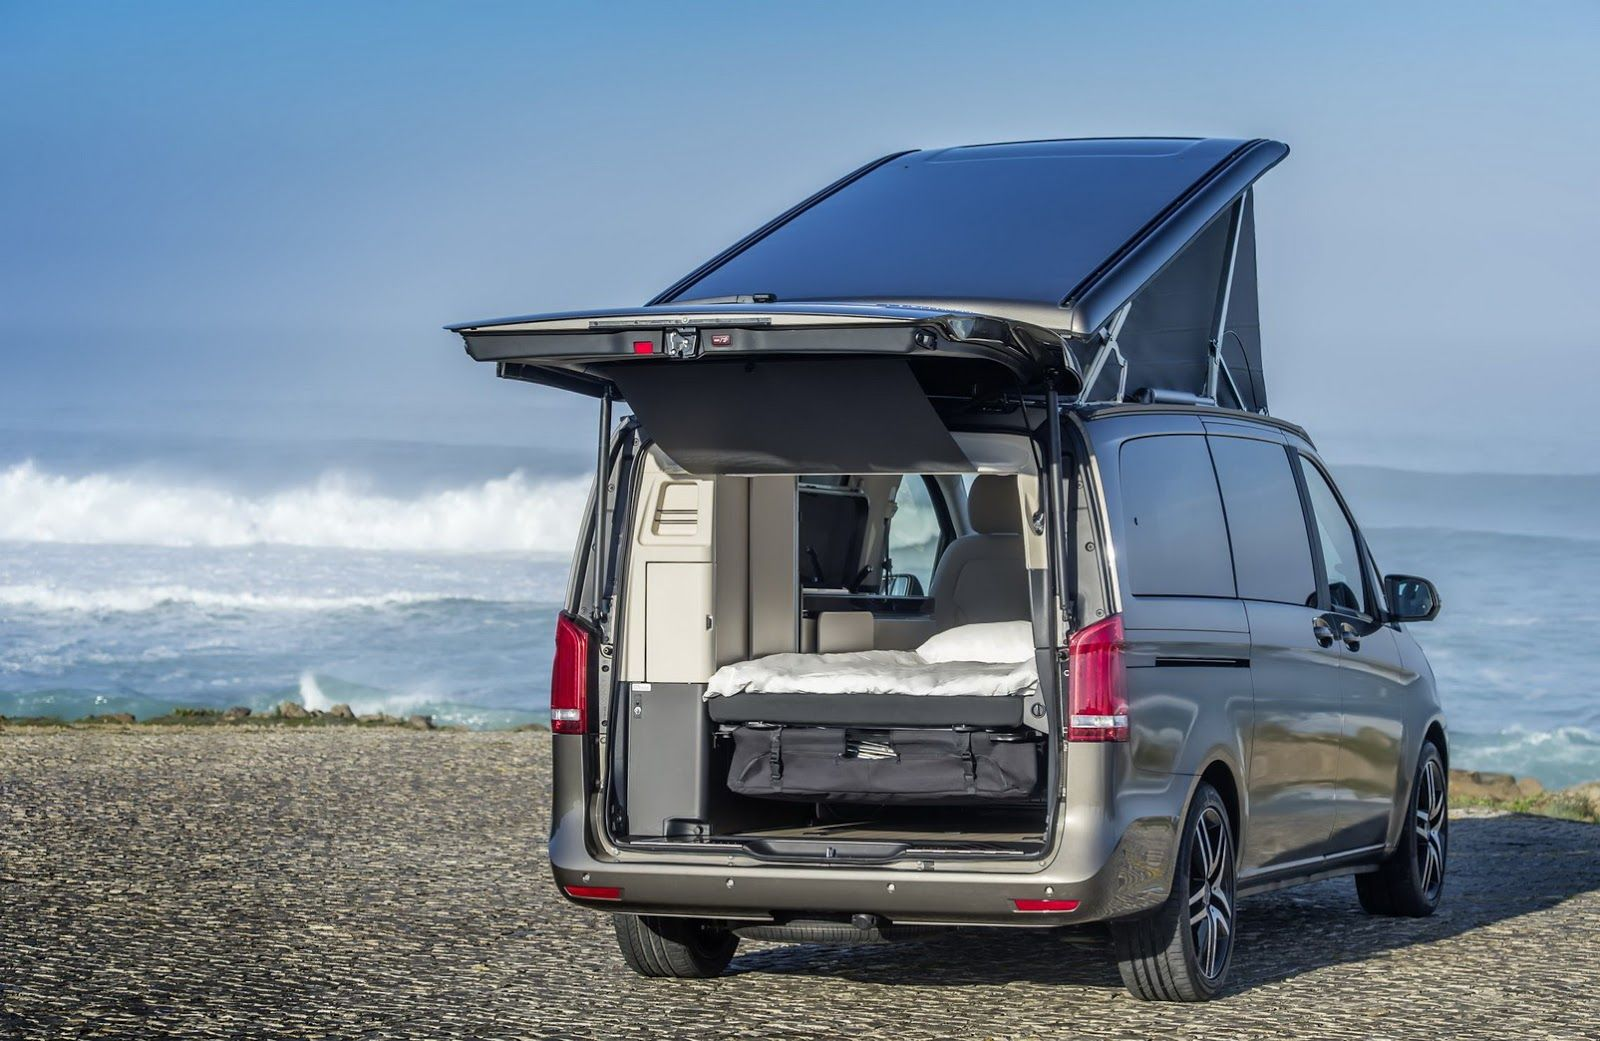 V-Class Marco Polo Camper Van Priced From £53,180 In The UK